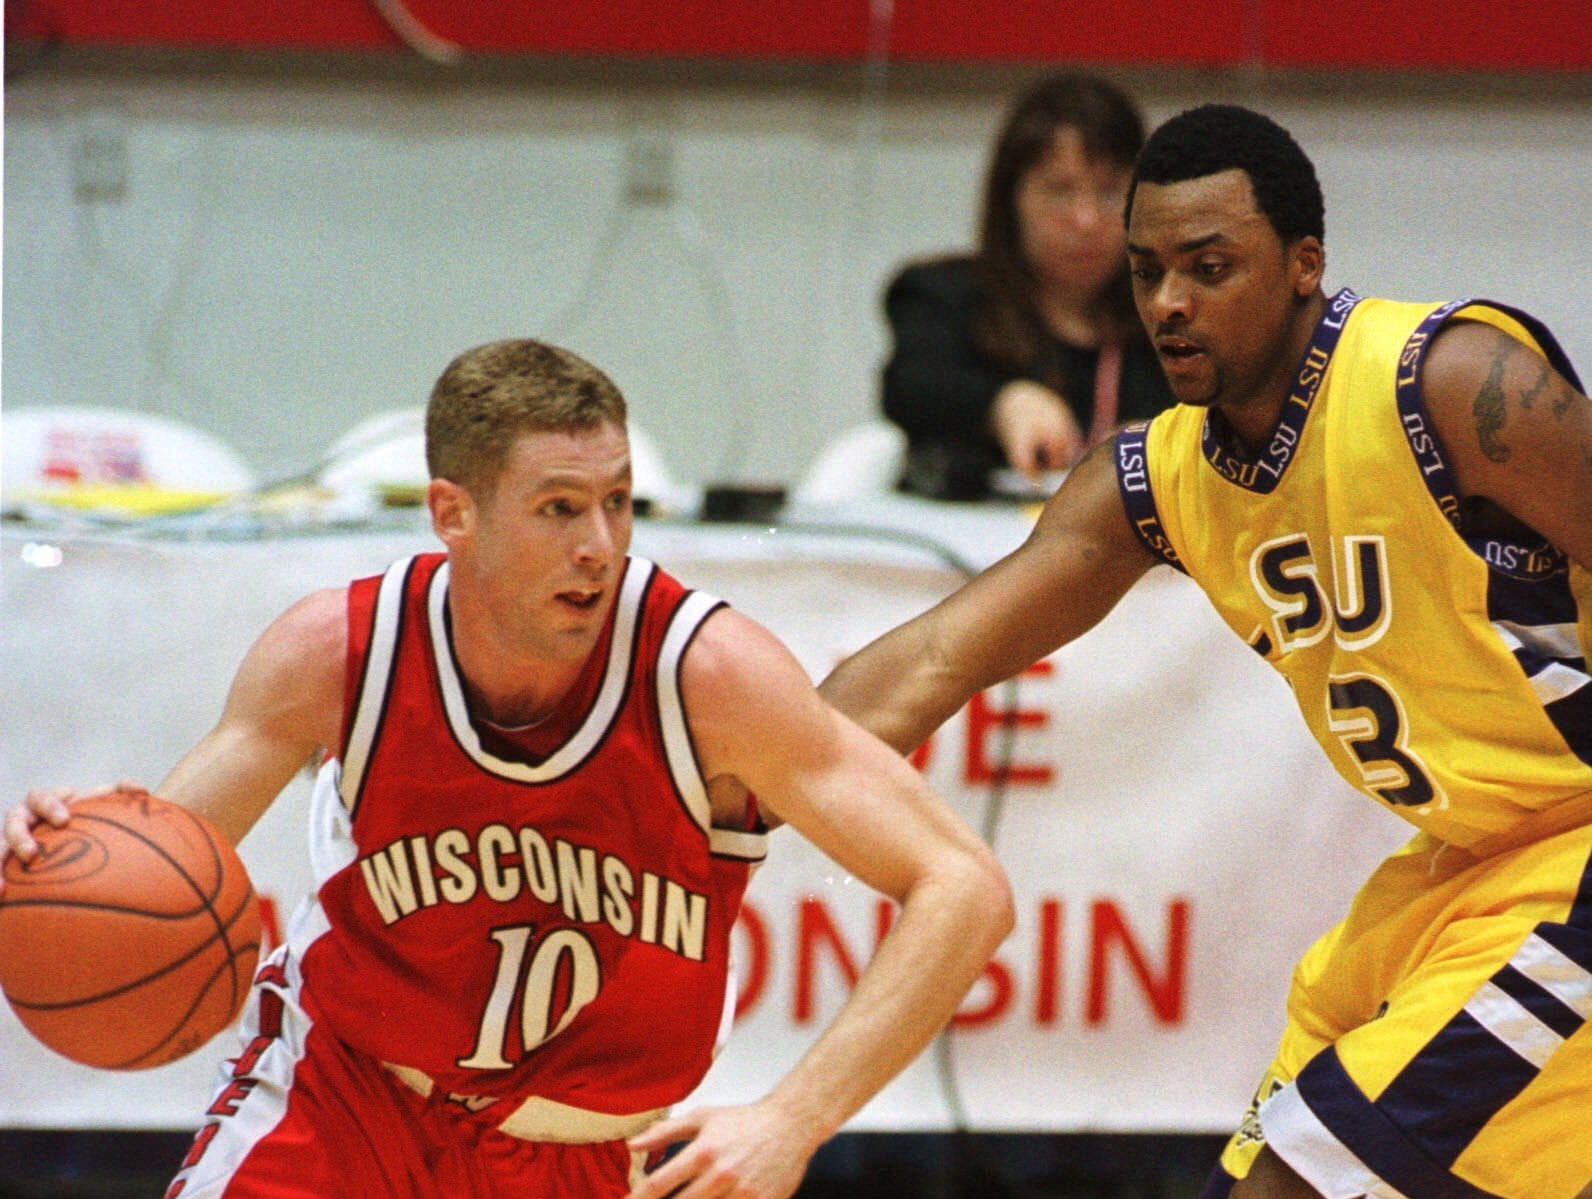 Wisconsin's Jon Bryant (10) drives around LSU's Torris Bright during the second half Thursday, March 23, 2000, of the NCAA West Regional in Albuquerque, N.M. Bryant led Wisconsin with 16 points in their 61-48 victory.